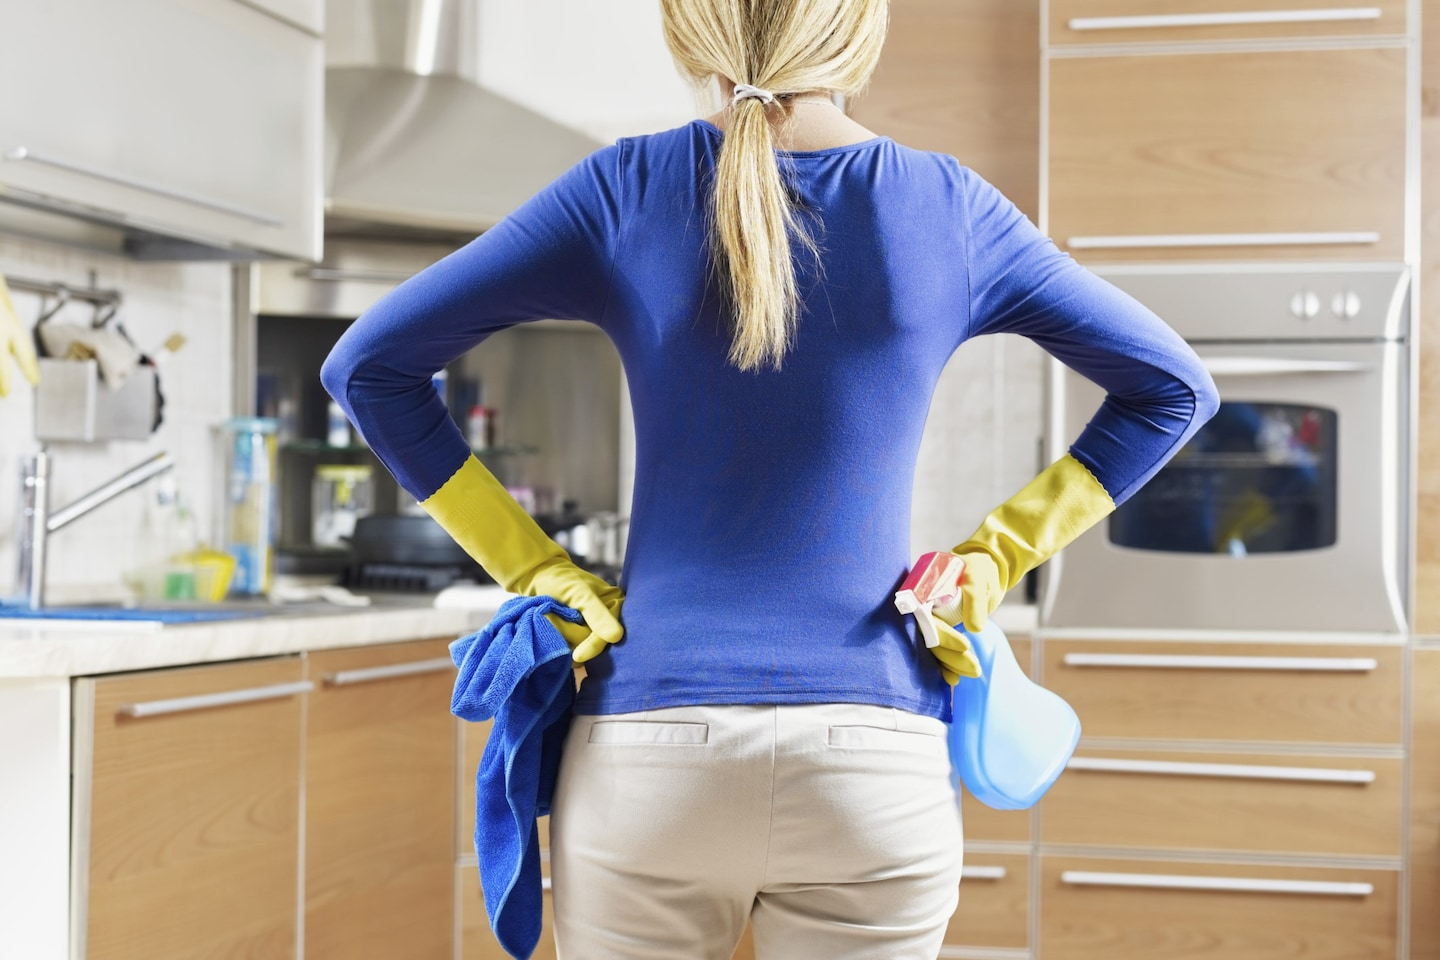 Scrubbs (Cleaning service)